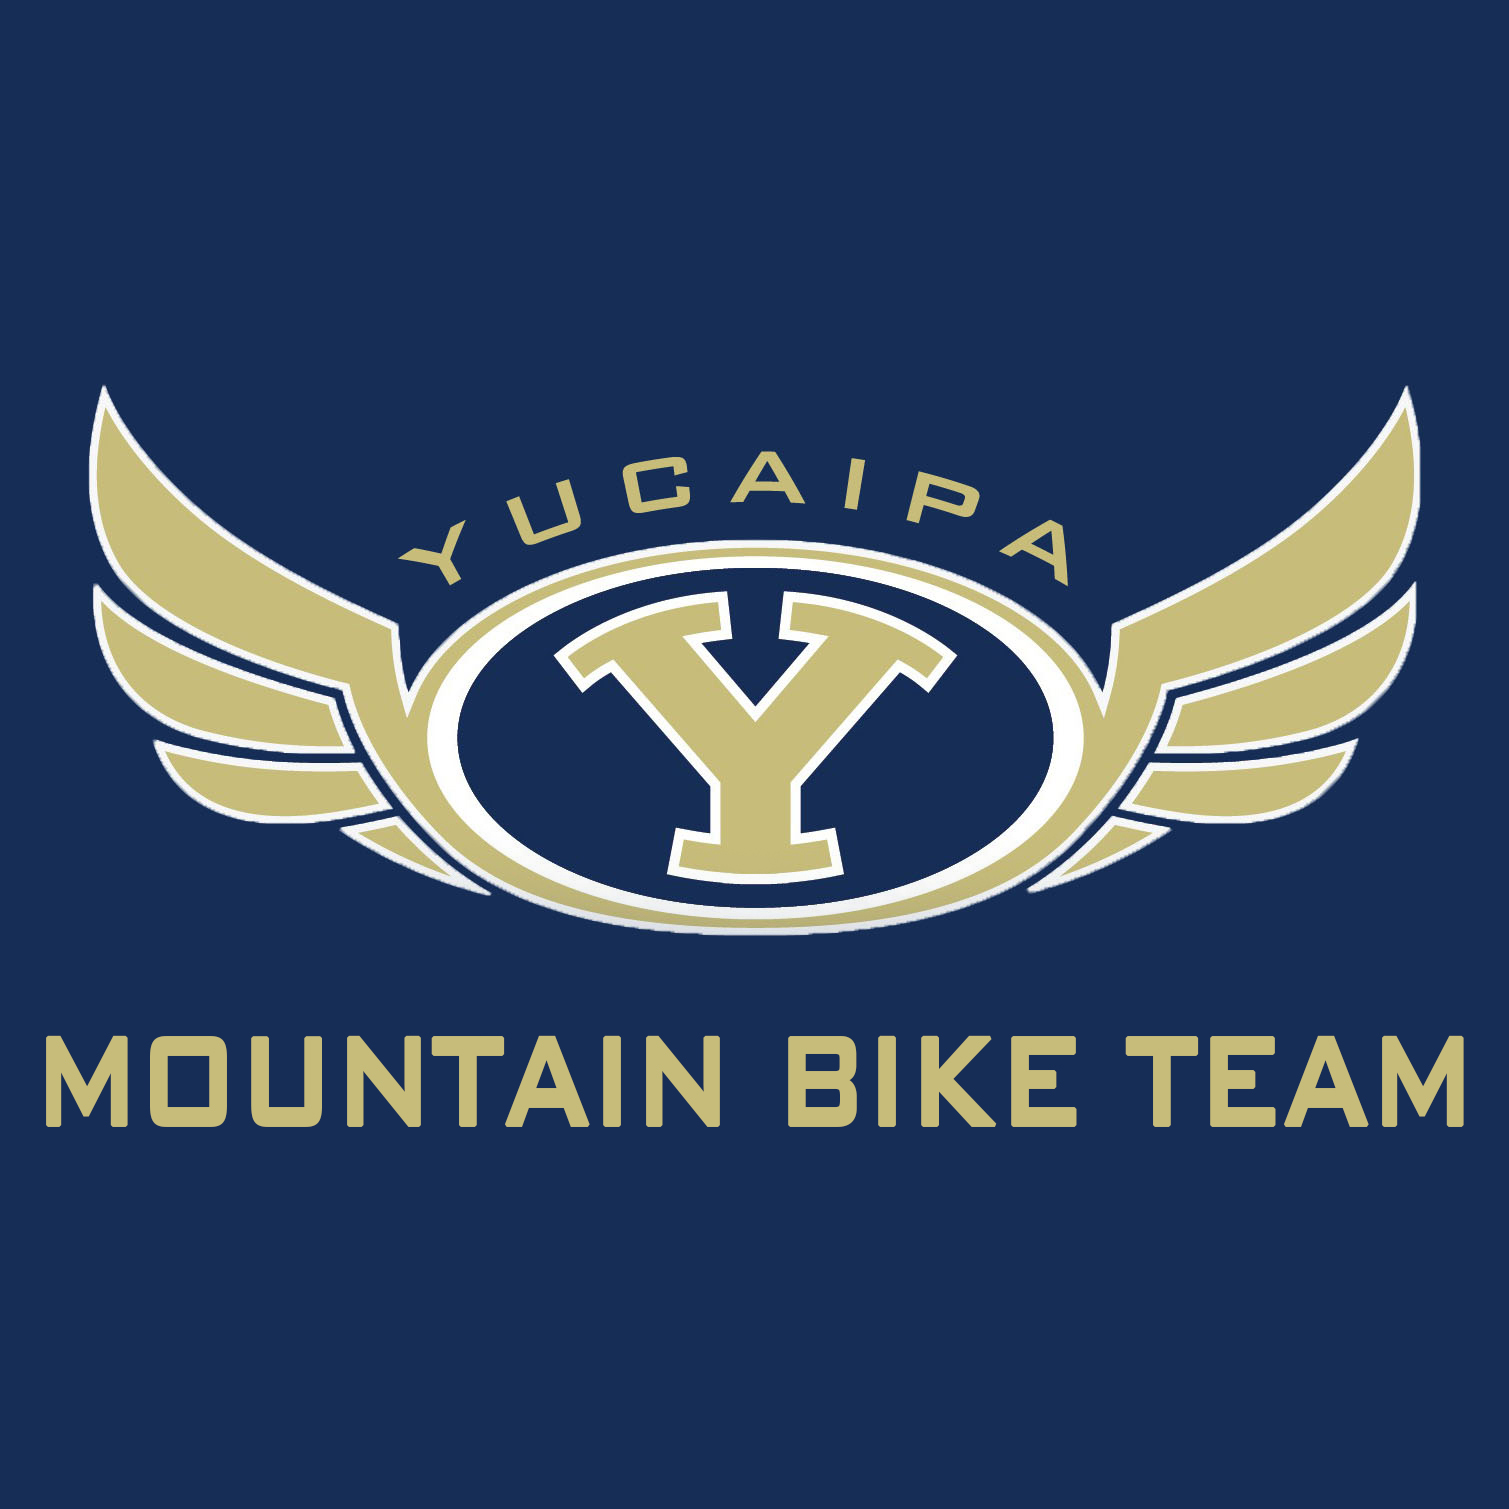 Mountain Bike Team